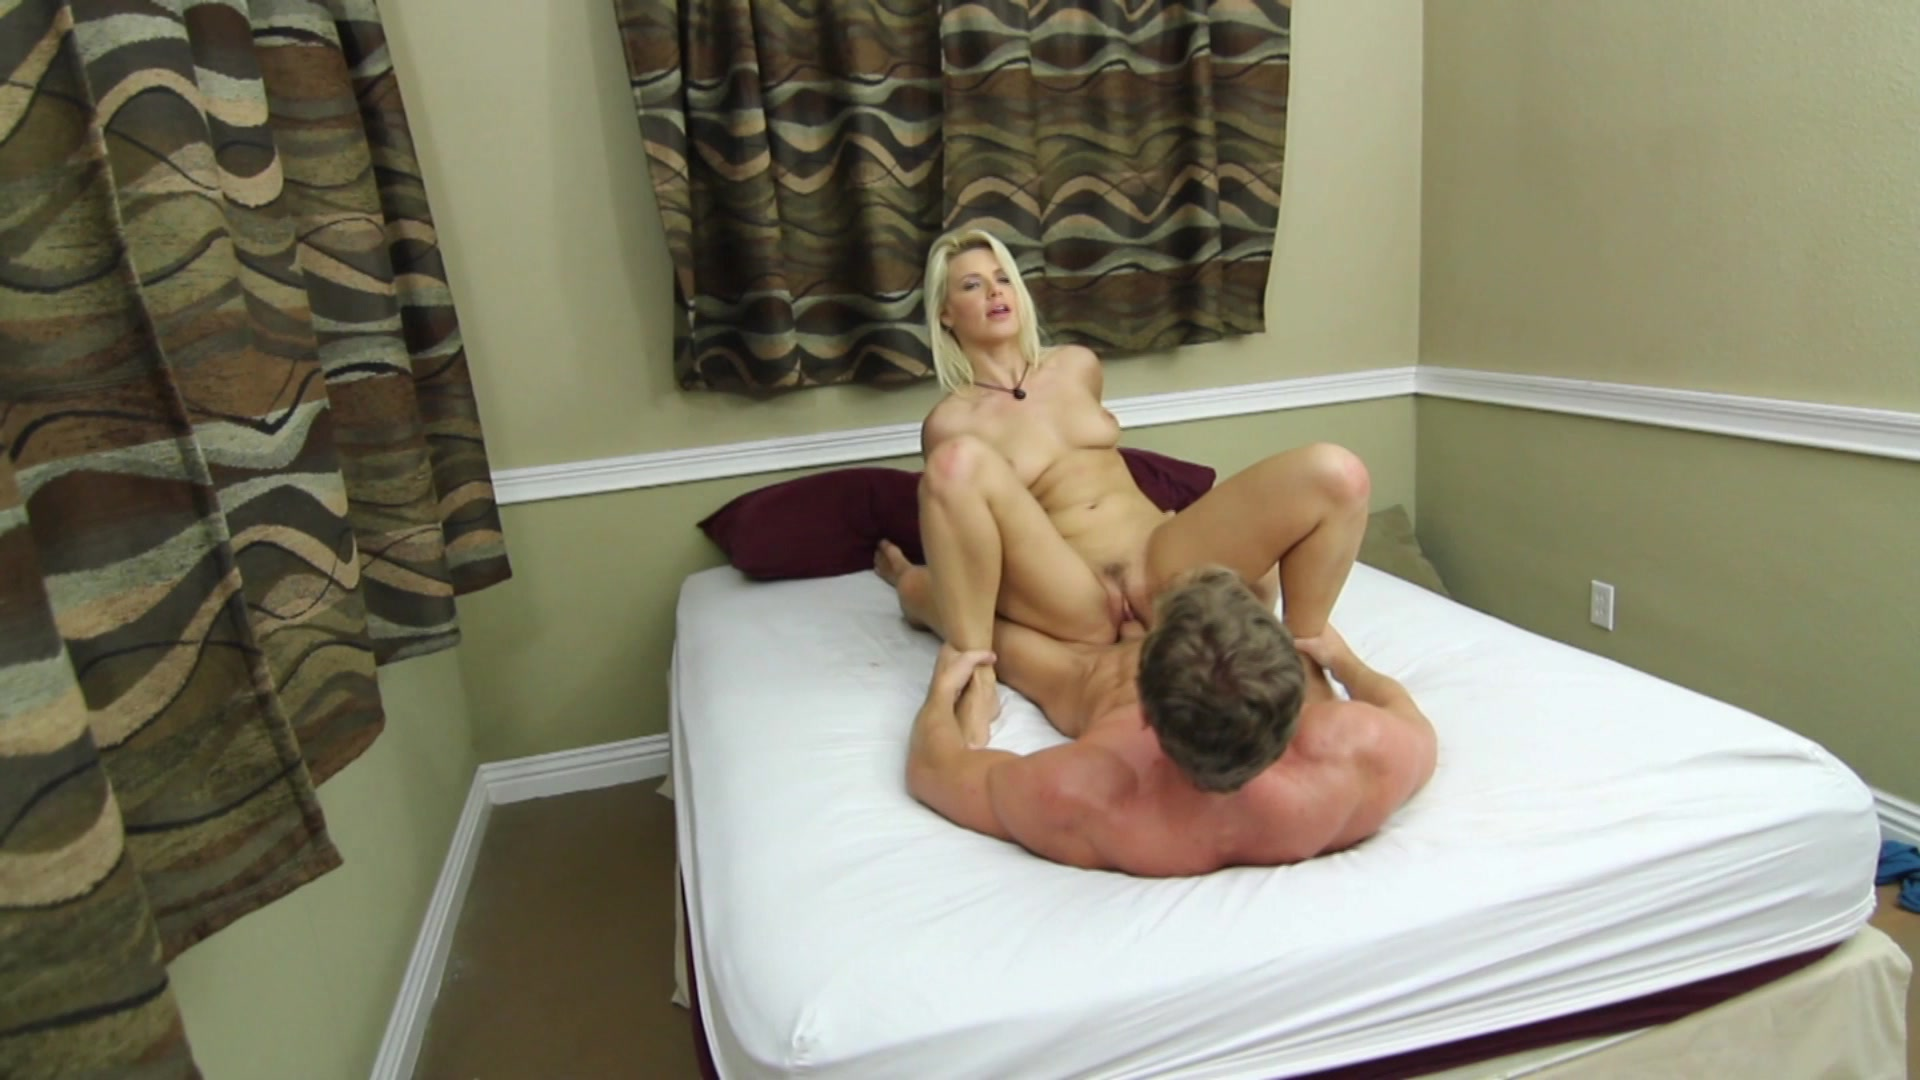 Cheating Wives Caught Vol 3 2013  Porn Pros  Adult -2294